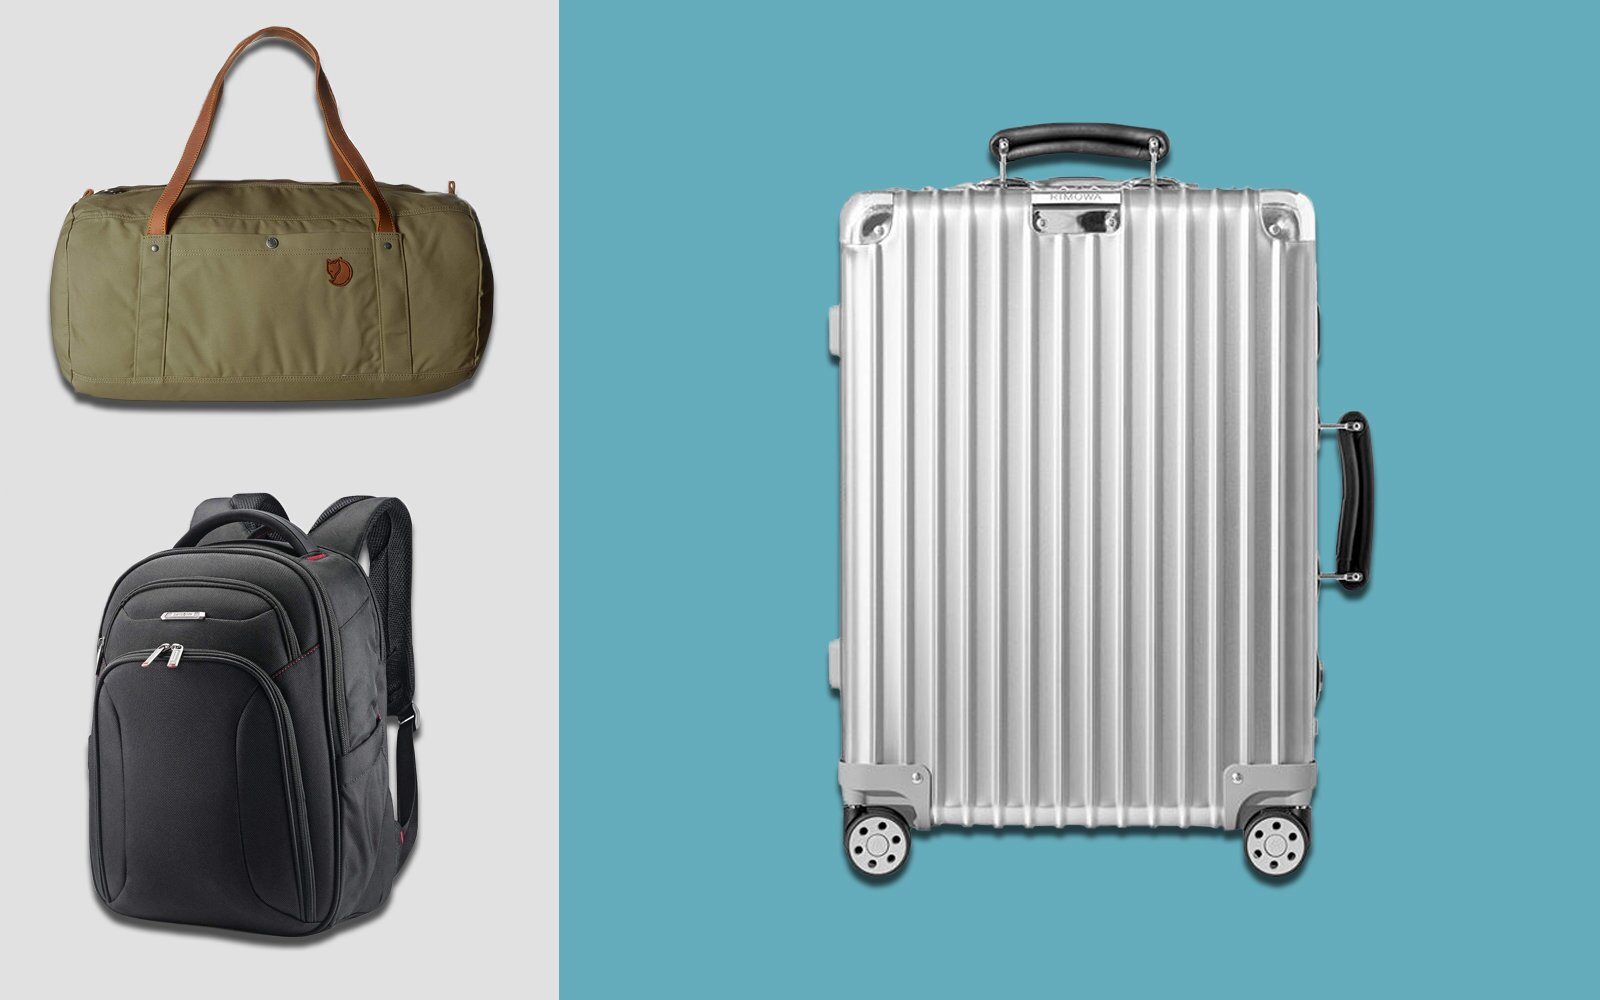 372b7fd0861c The Most Durable Carry-on and Checked Luggage | Travel + Leisure